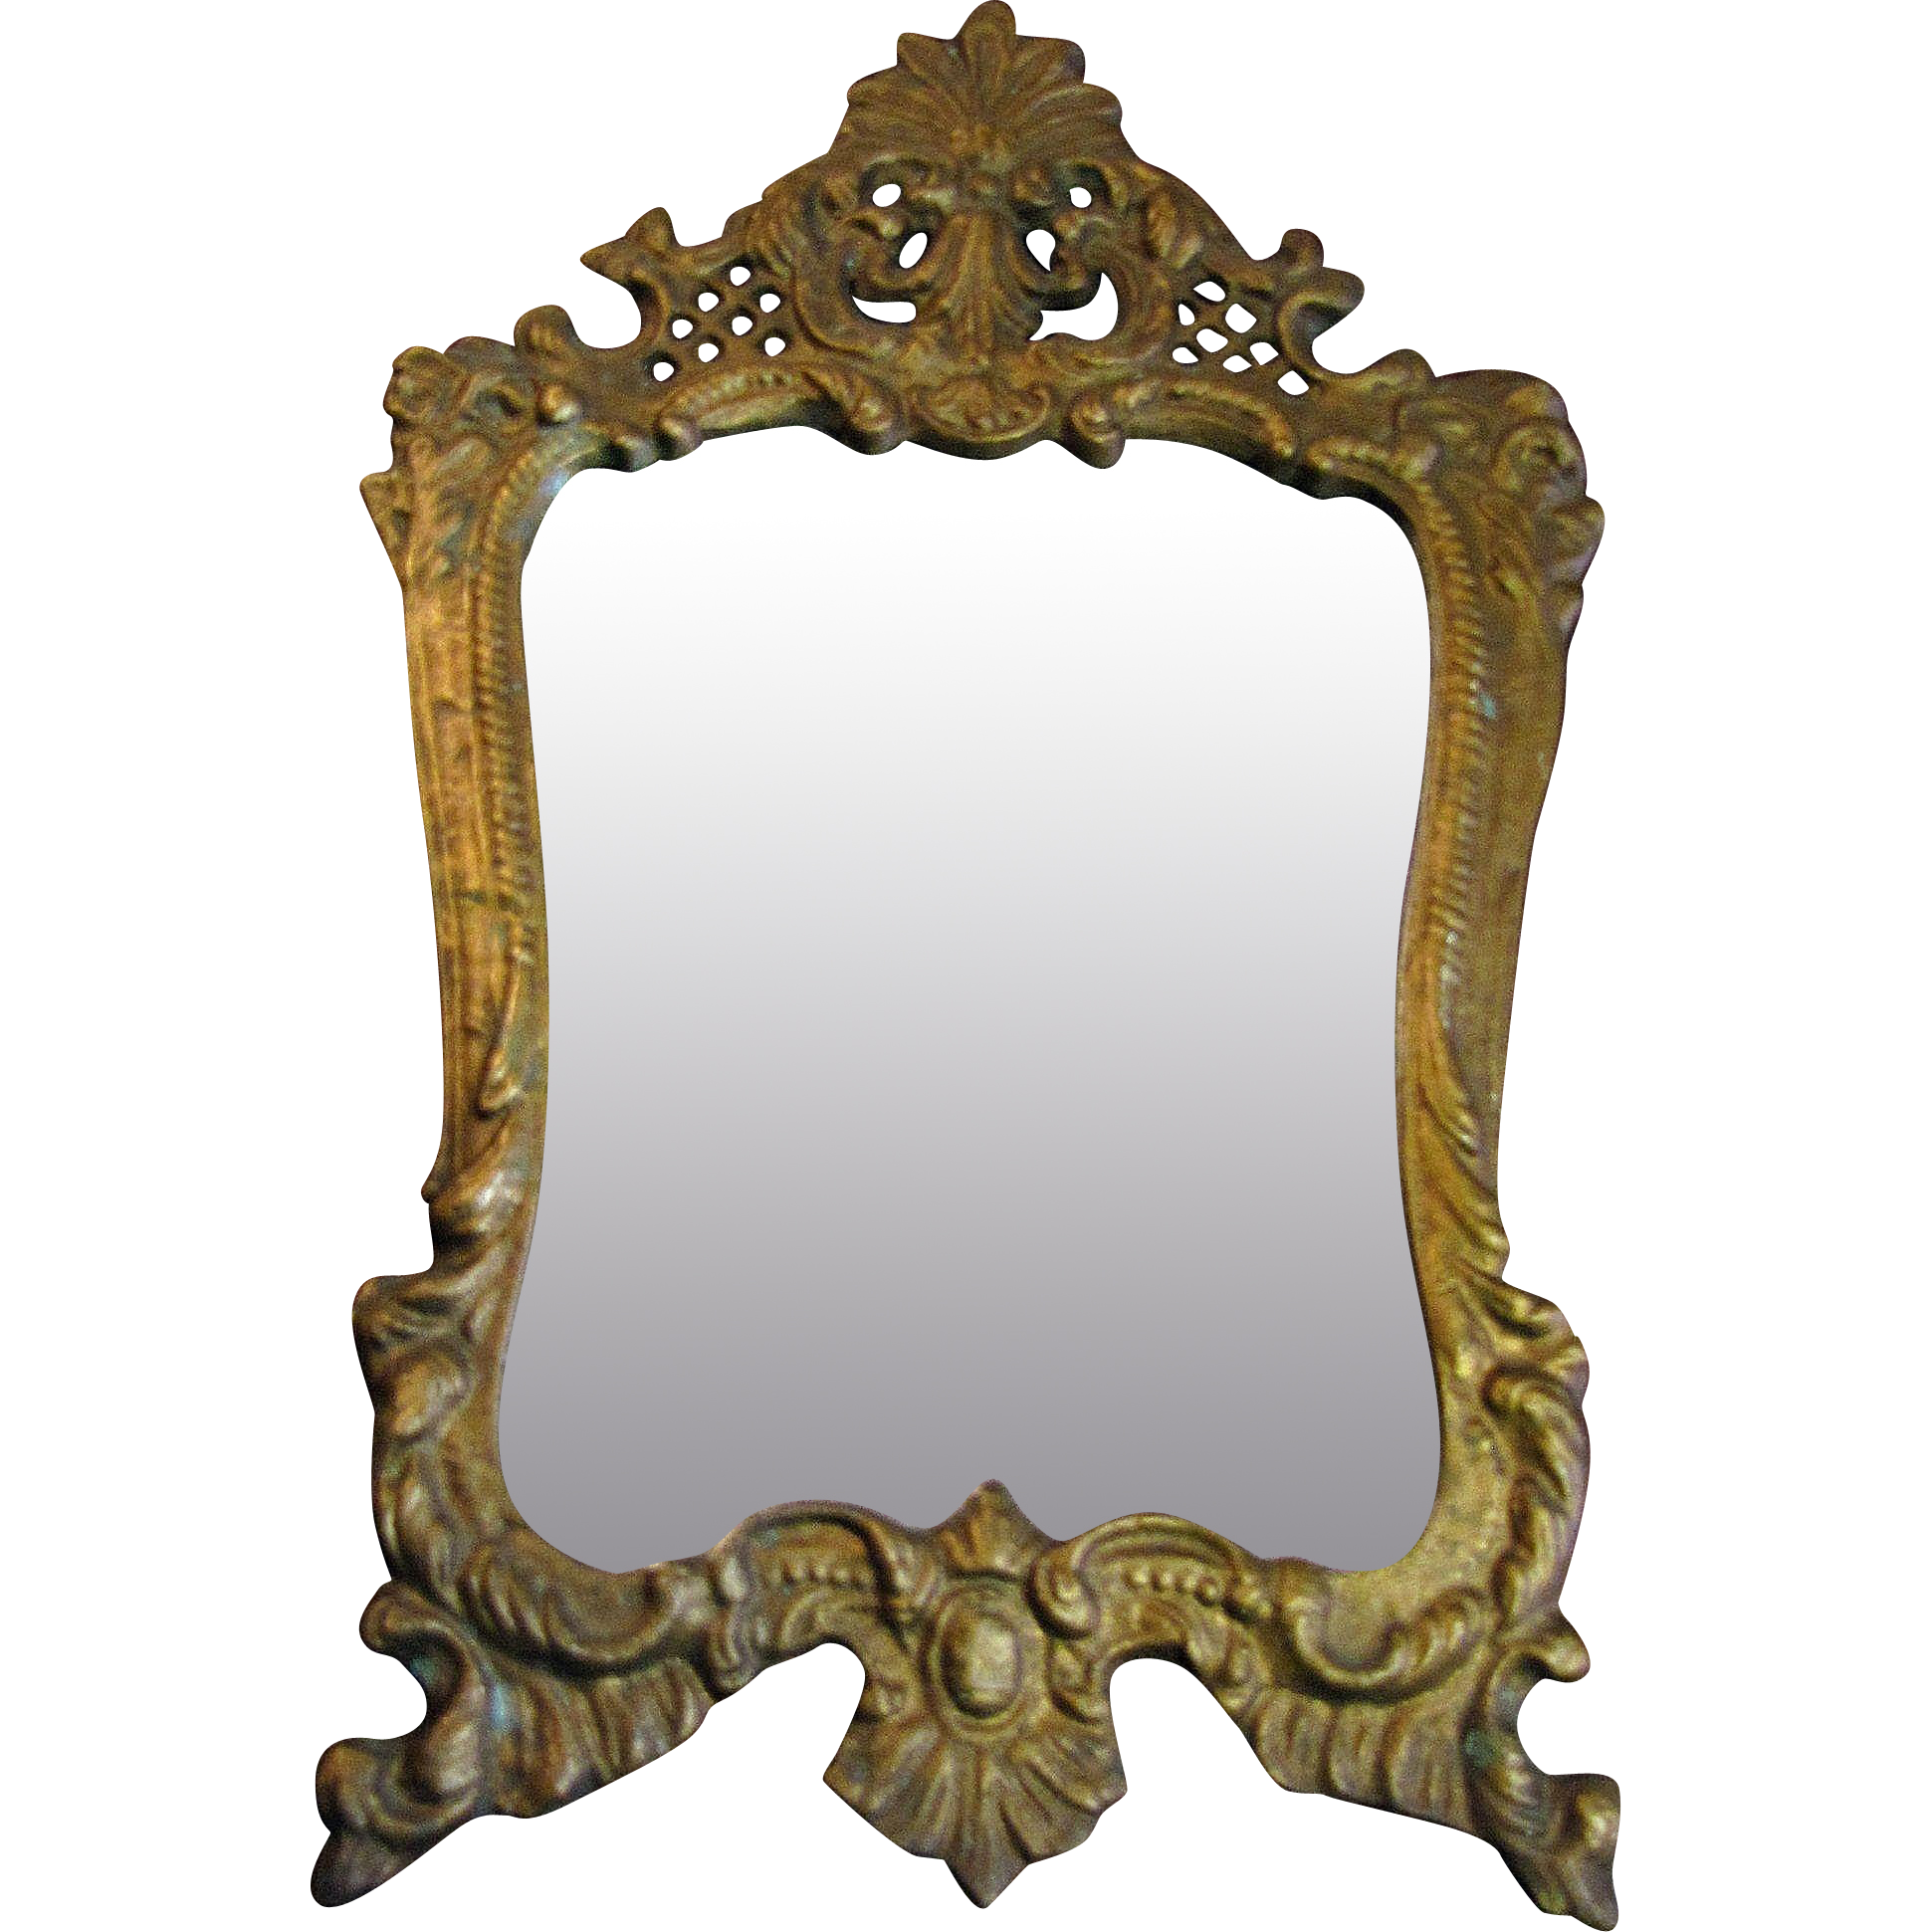 victorian gilt ornate french rococco style cast metal wall mirror or picture frame - Metal Mirror Frame